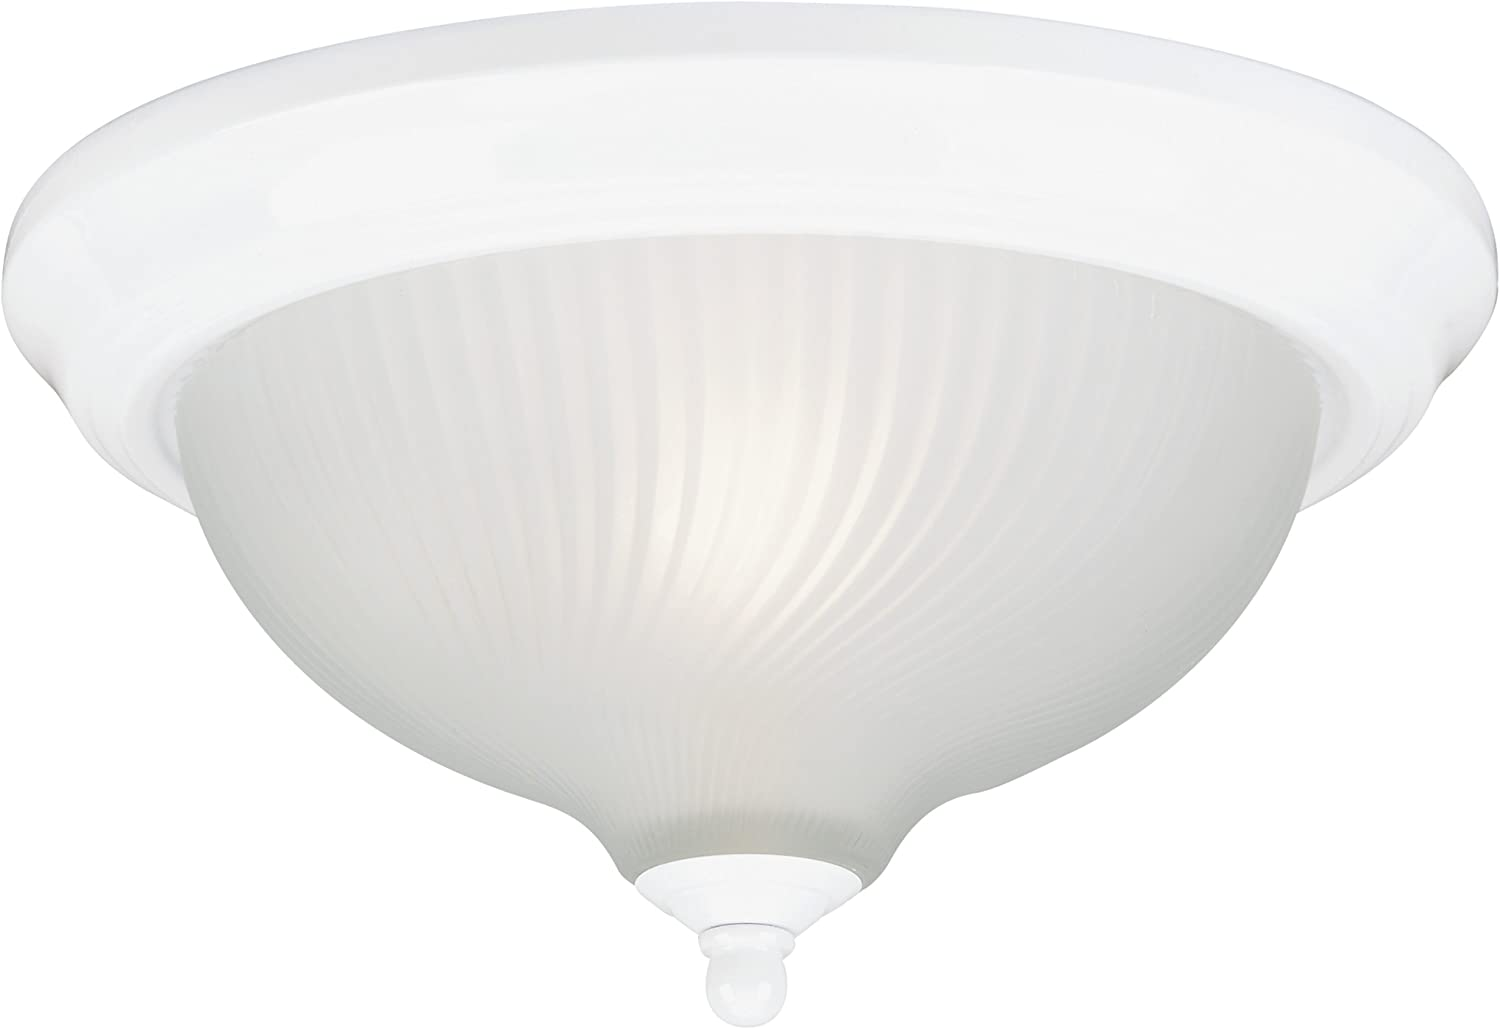 Westinghouse Lighting 6430100 Three-Light Flush-Mount Interior Ceiling Fixture, White Finish with Frosted Swirl Glass